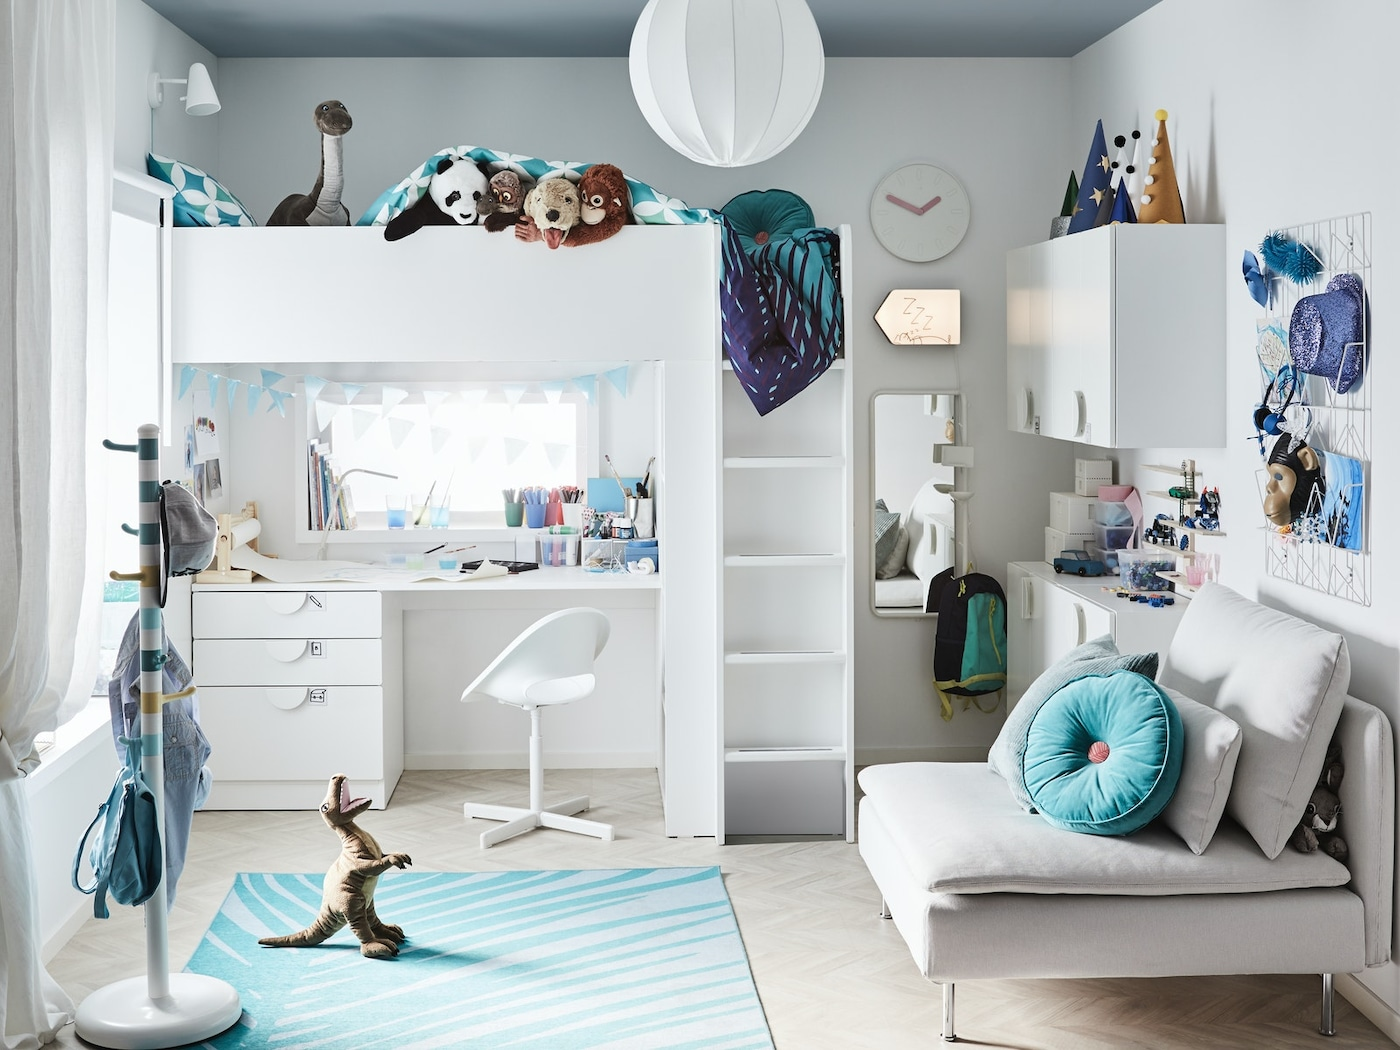 How to decorate a children's bedroom in blue tones